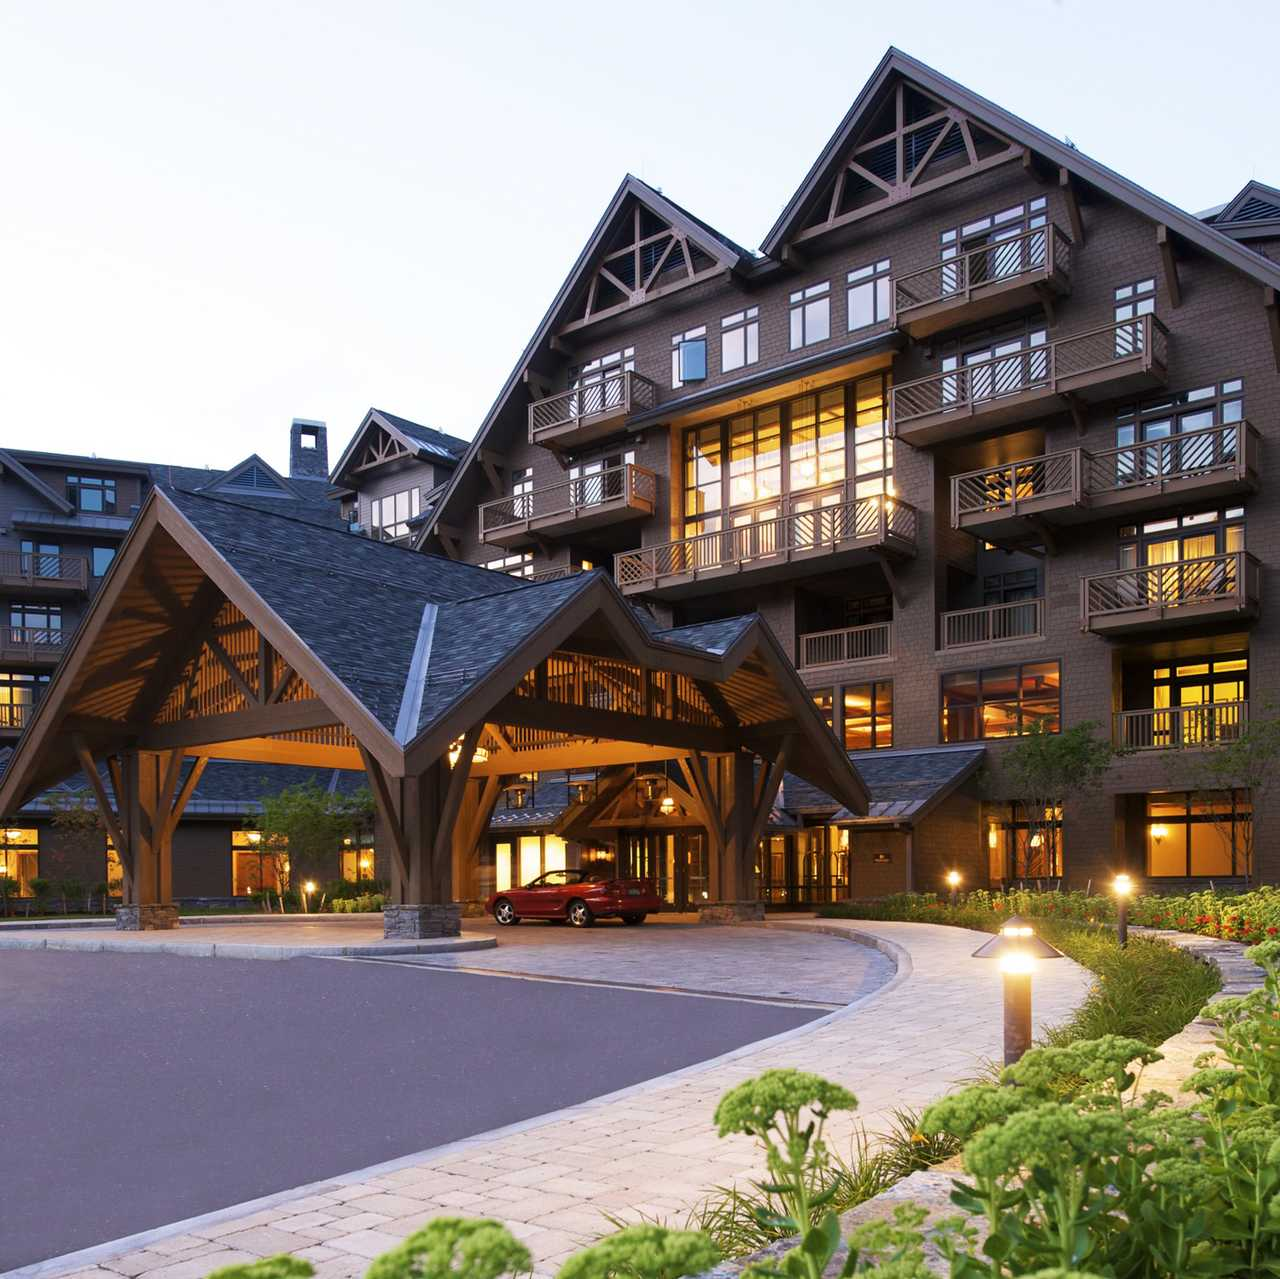 Hotel, Vermont: Stowe Mountain Lodge